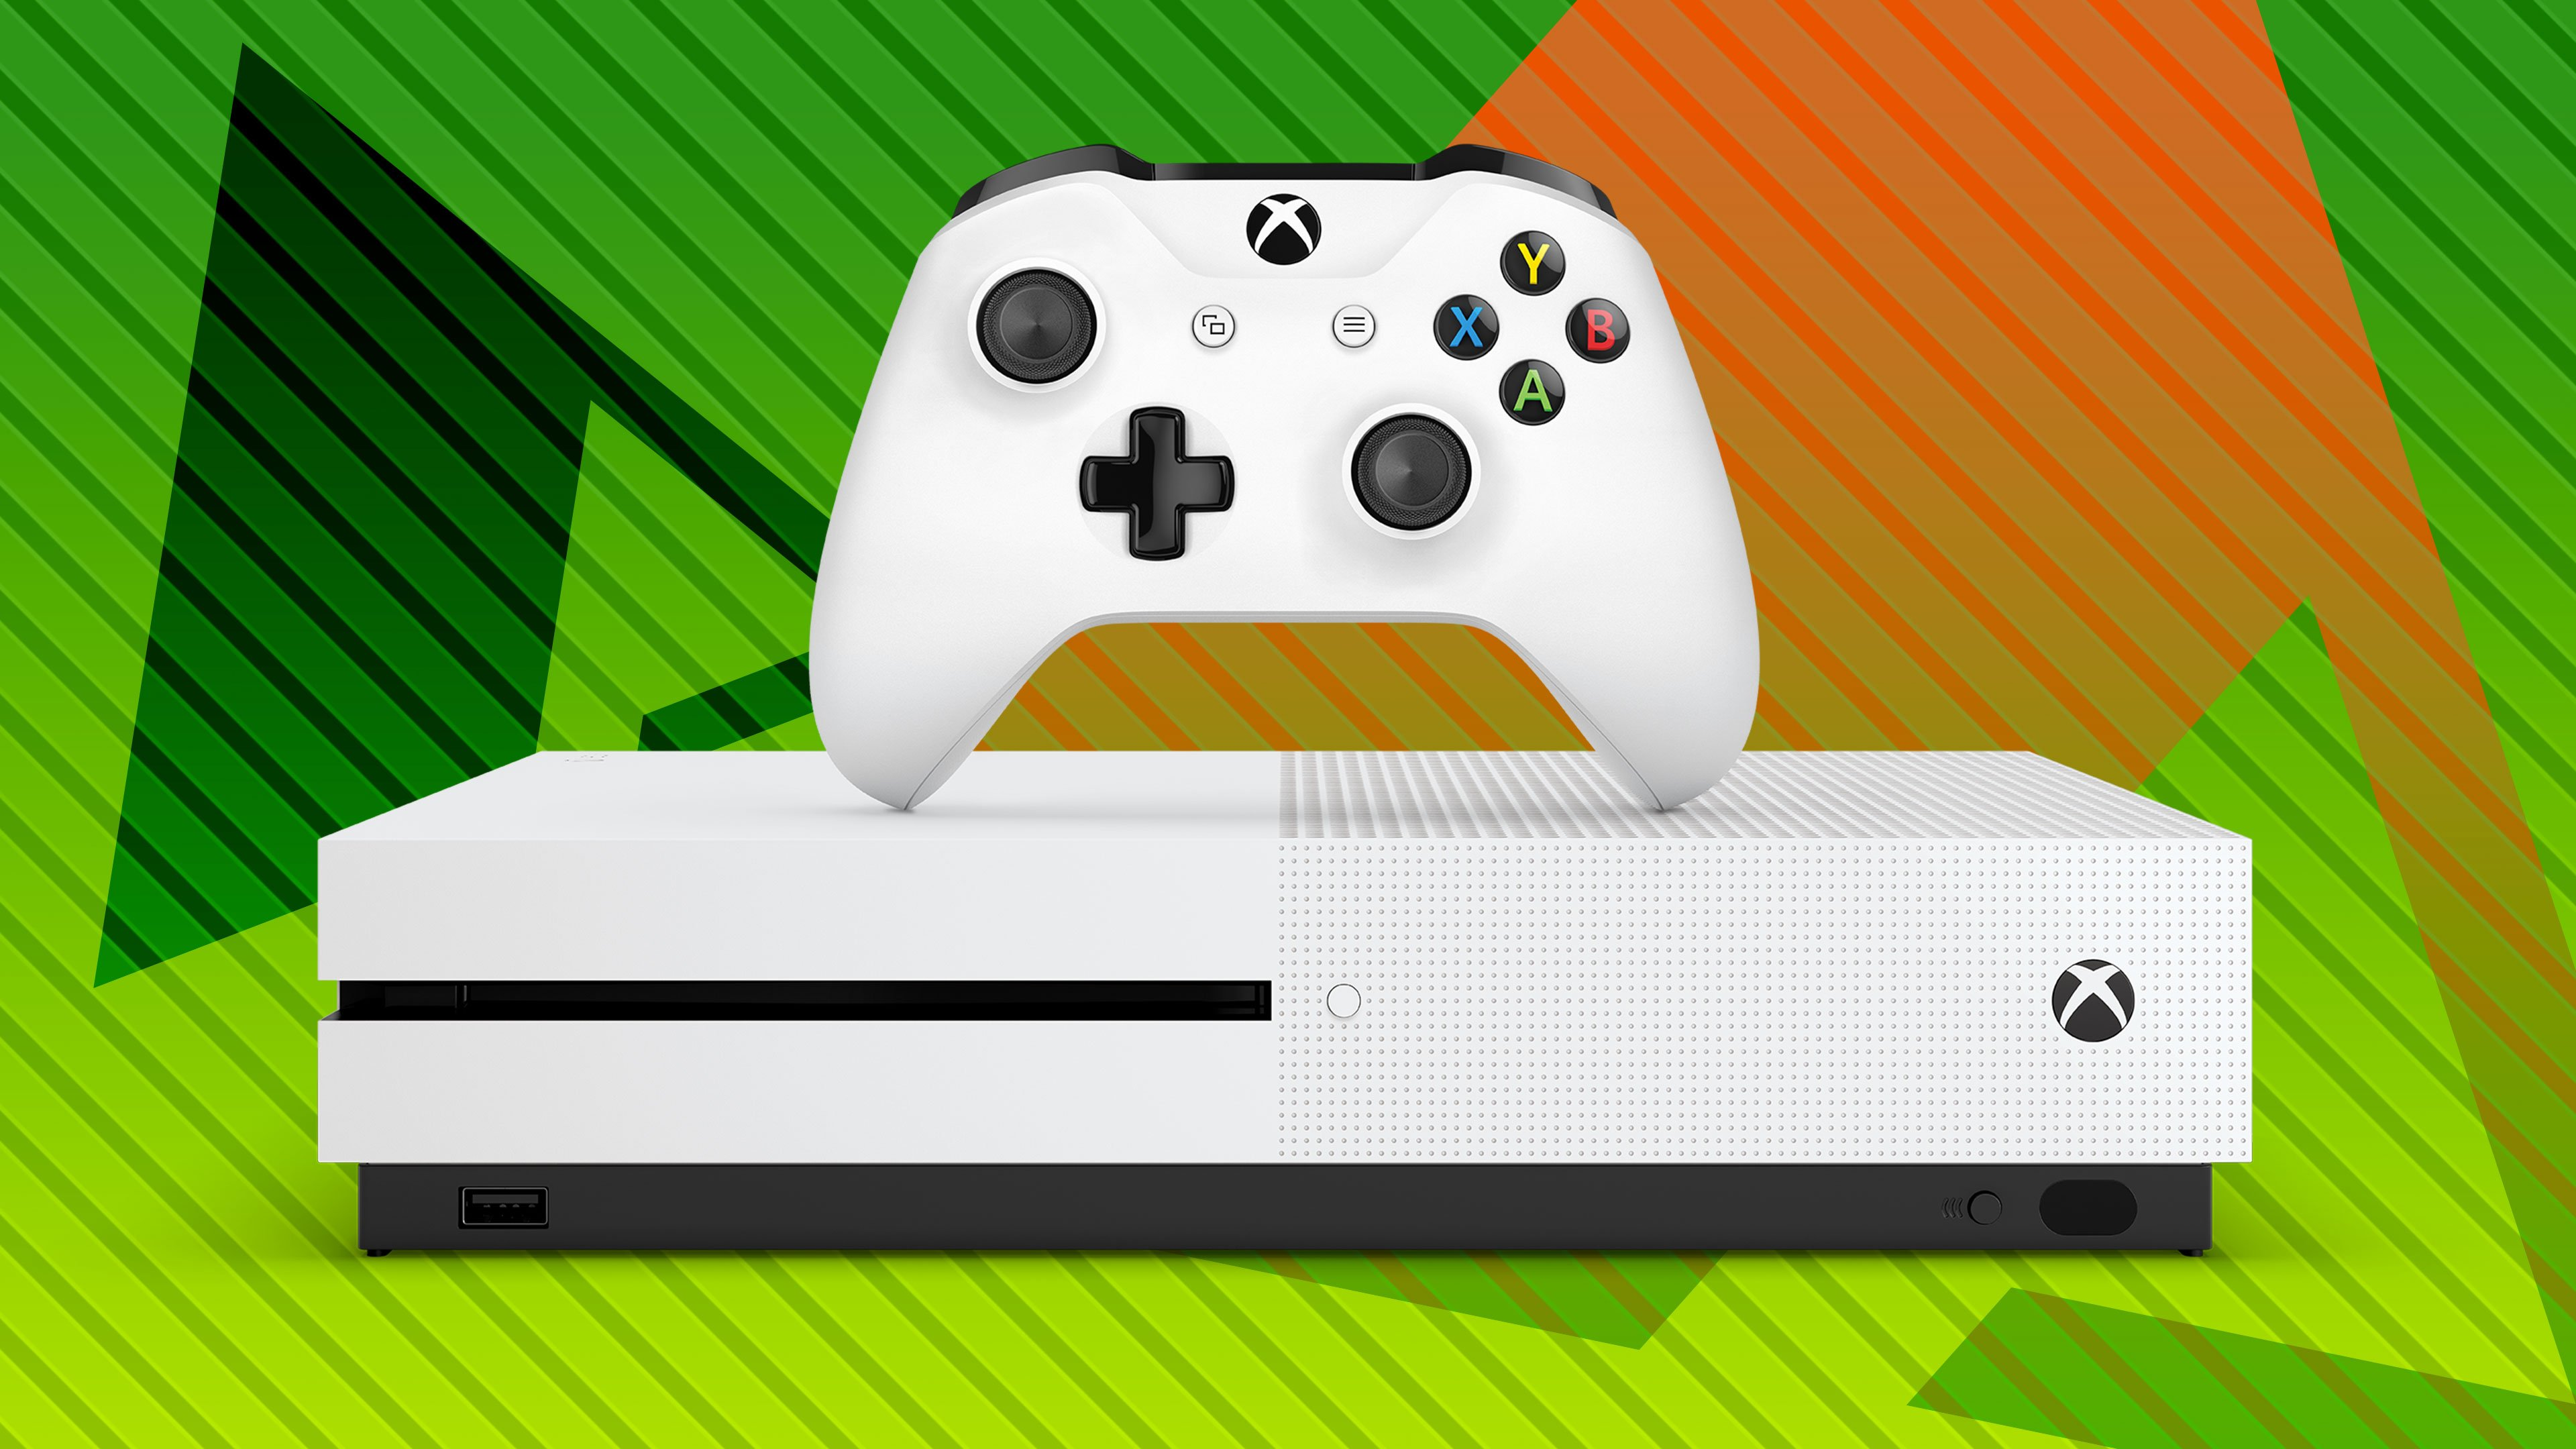 Black Friday grab an Xbox One S for under $150